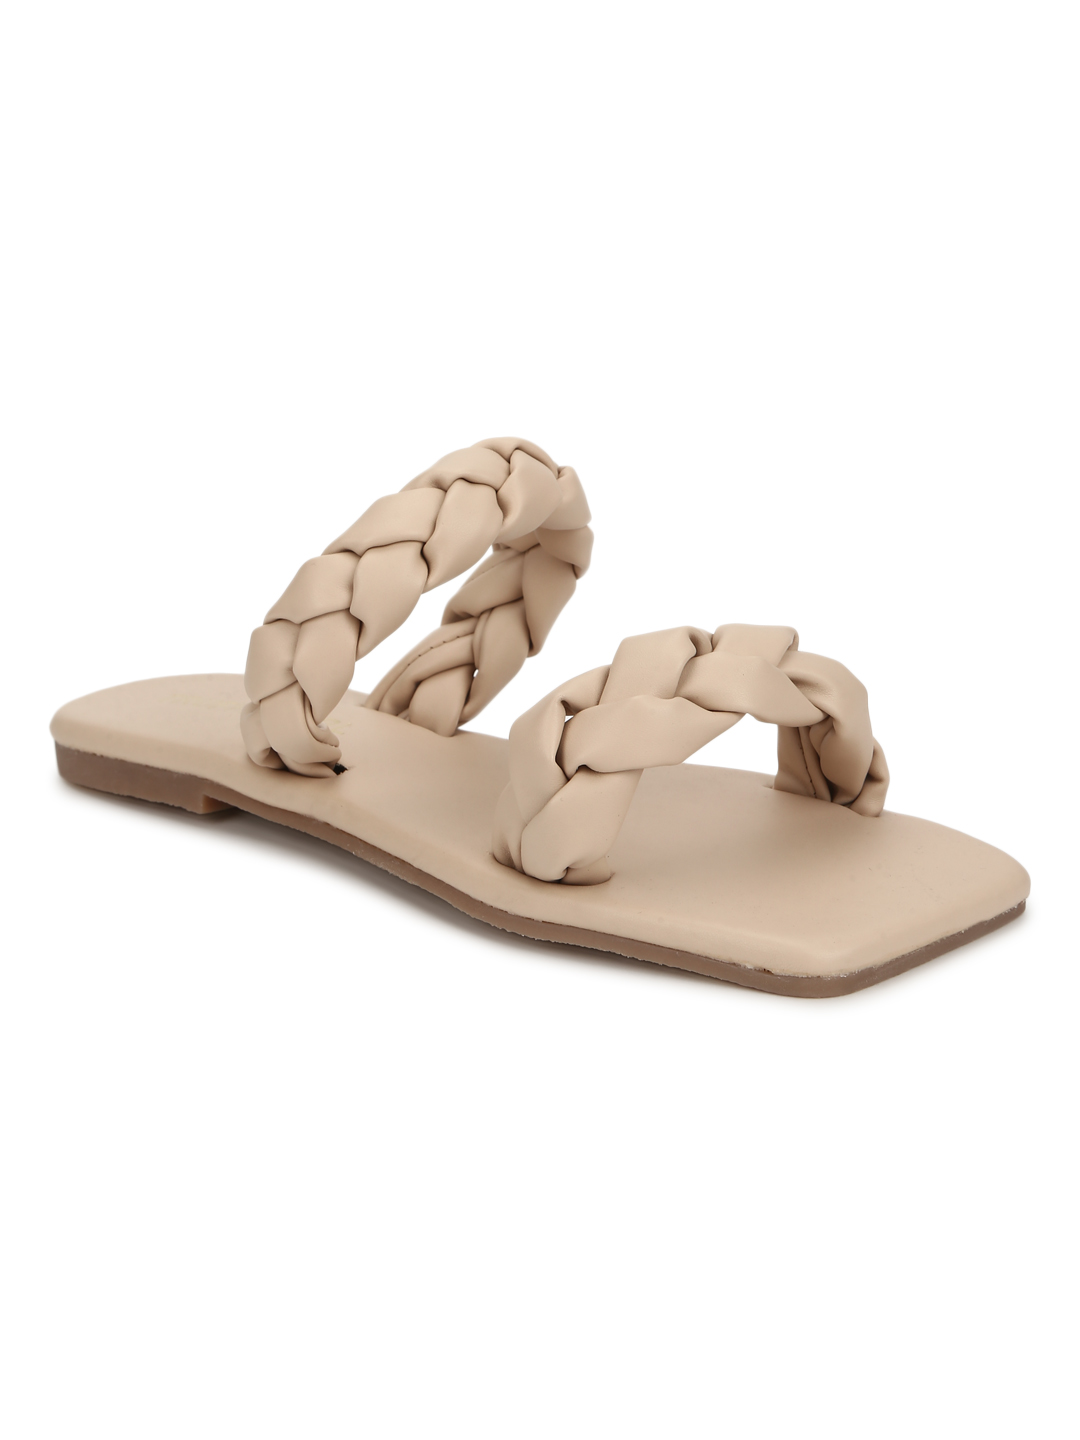 Truffle Collection | Truffle Collection Nude PU Braided Strap Slides